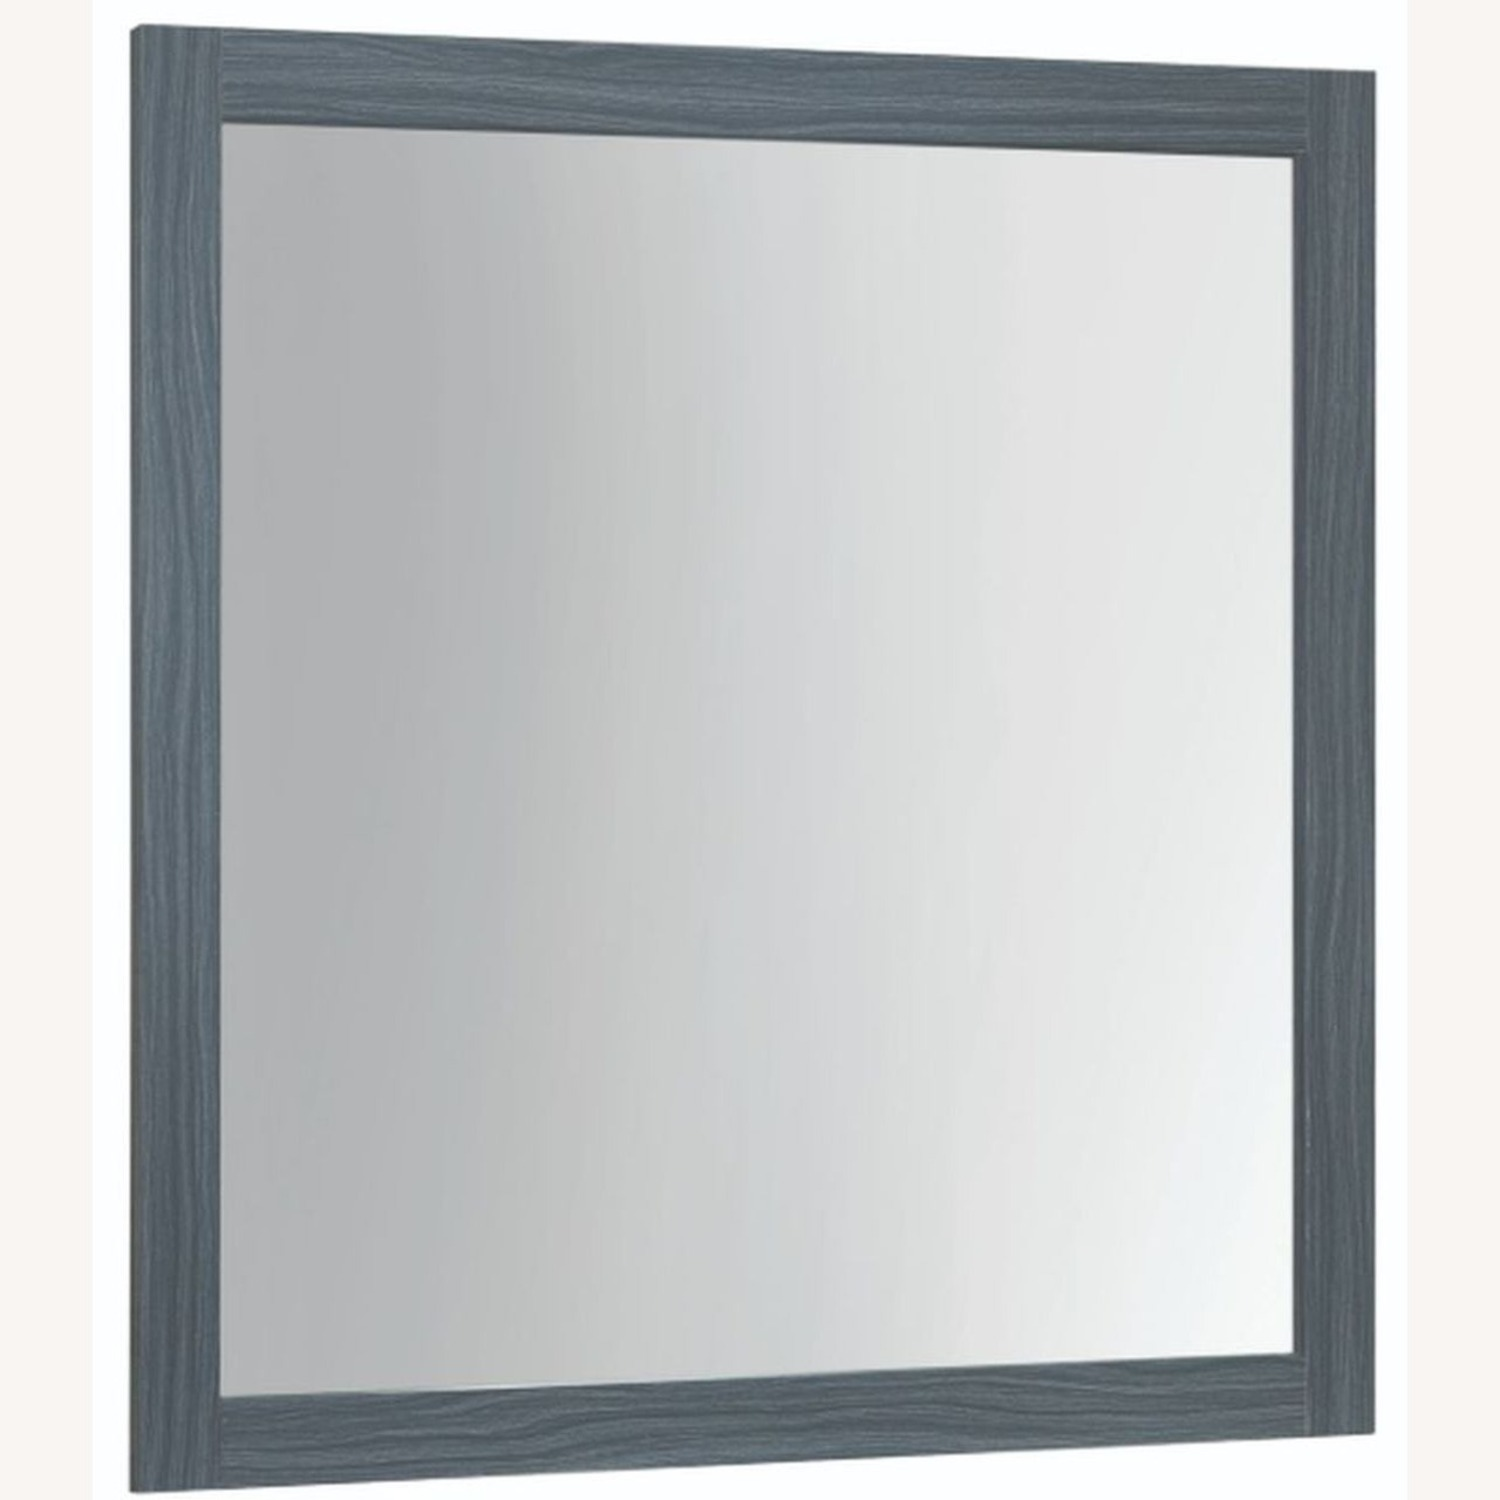 Modern Mirror In Dark Grey Oak Finish - image-0